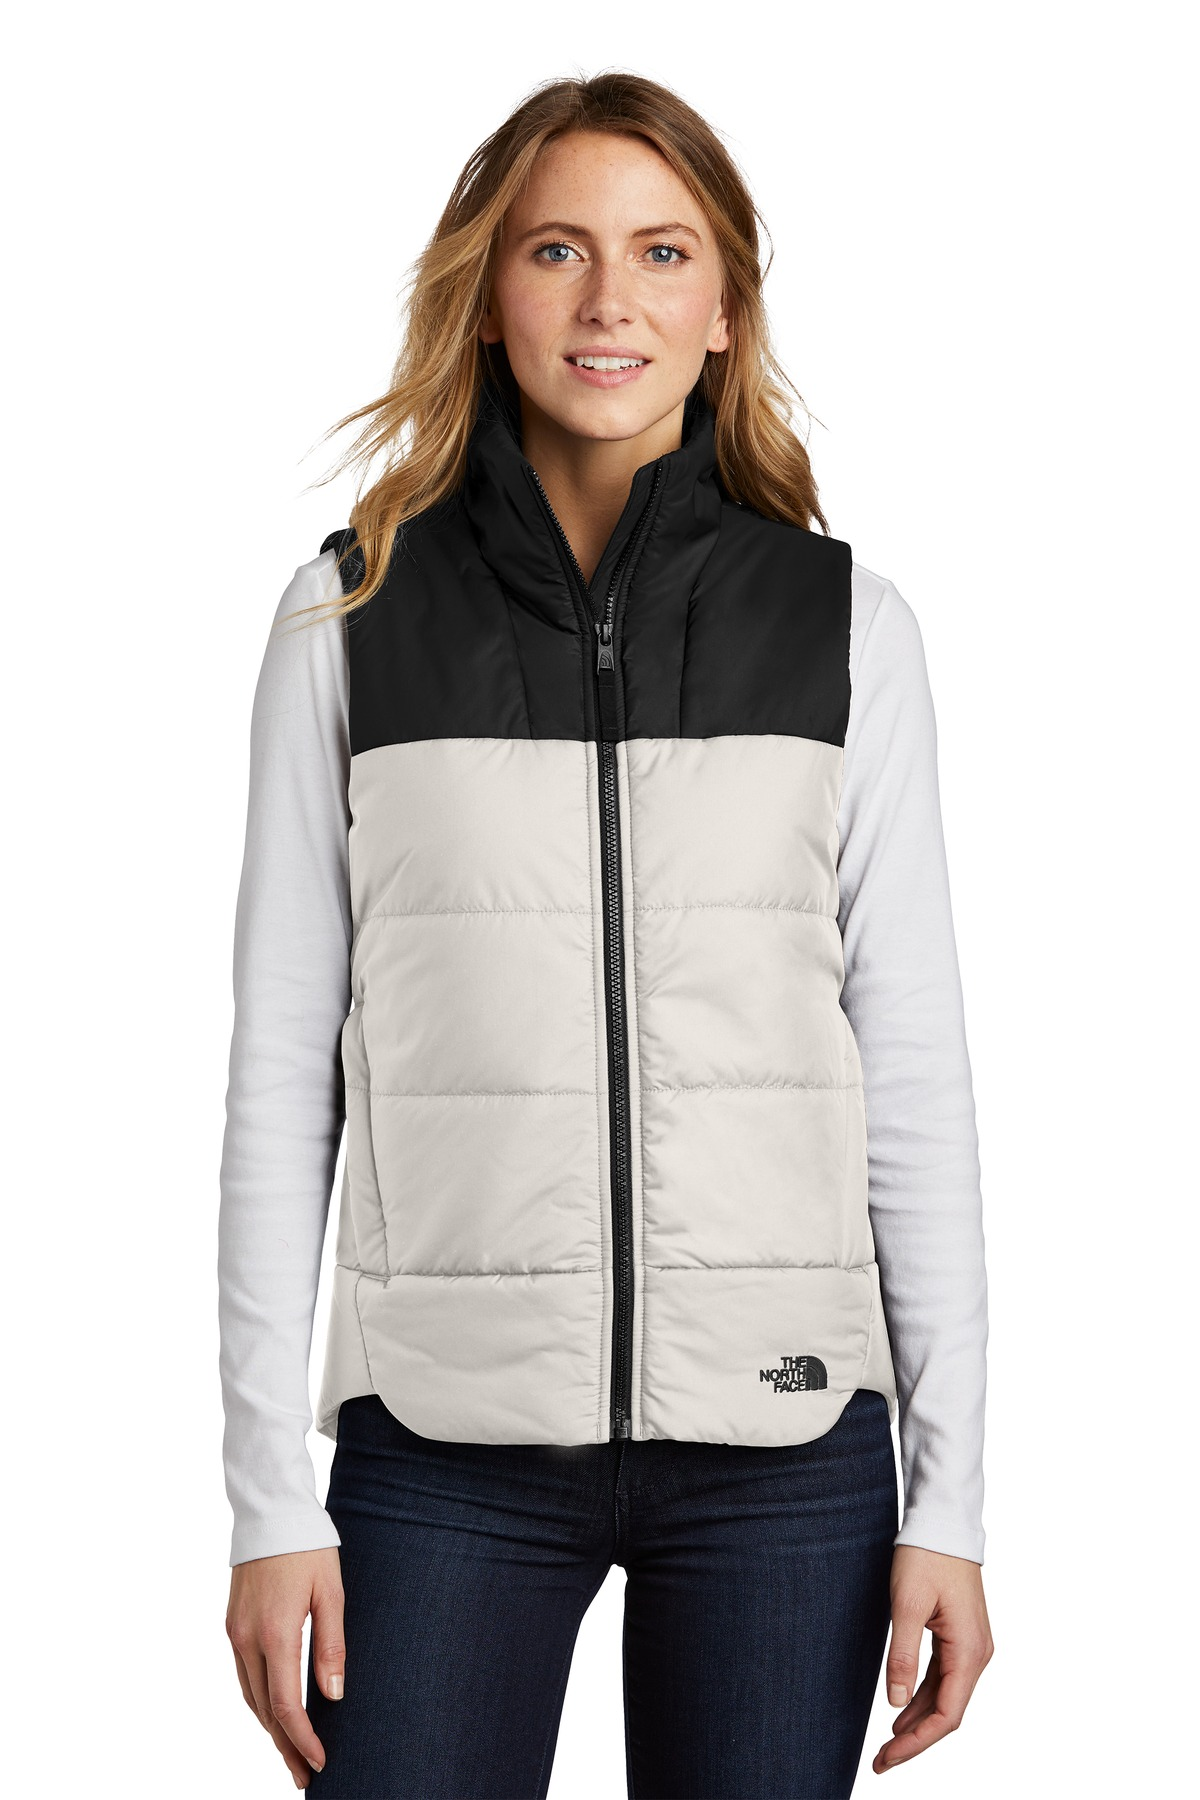 The North Face  ®  Ladies Everyday Insulated Vest. NF0A529Q - Vintage White